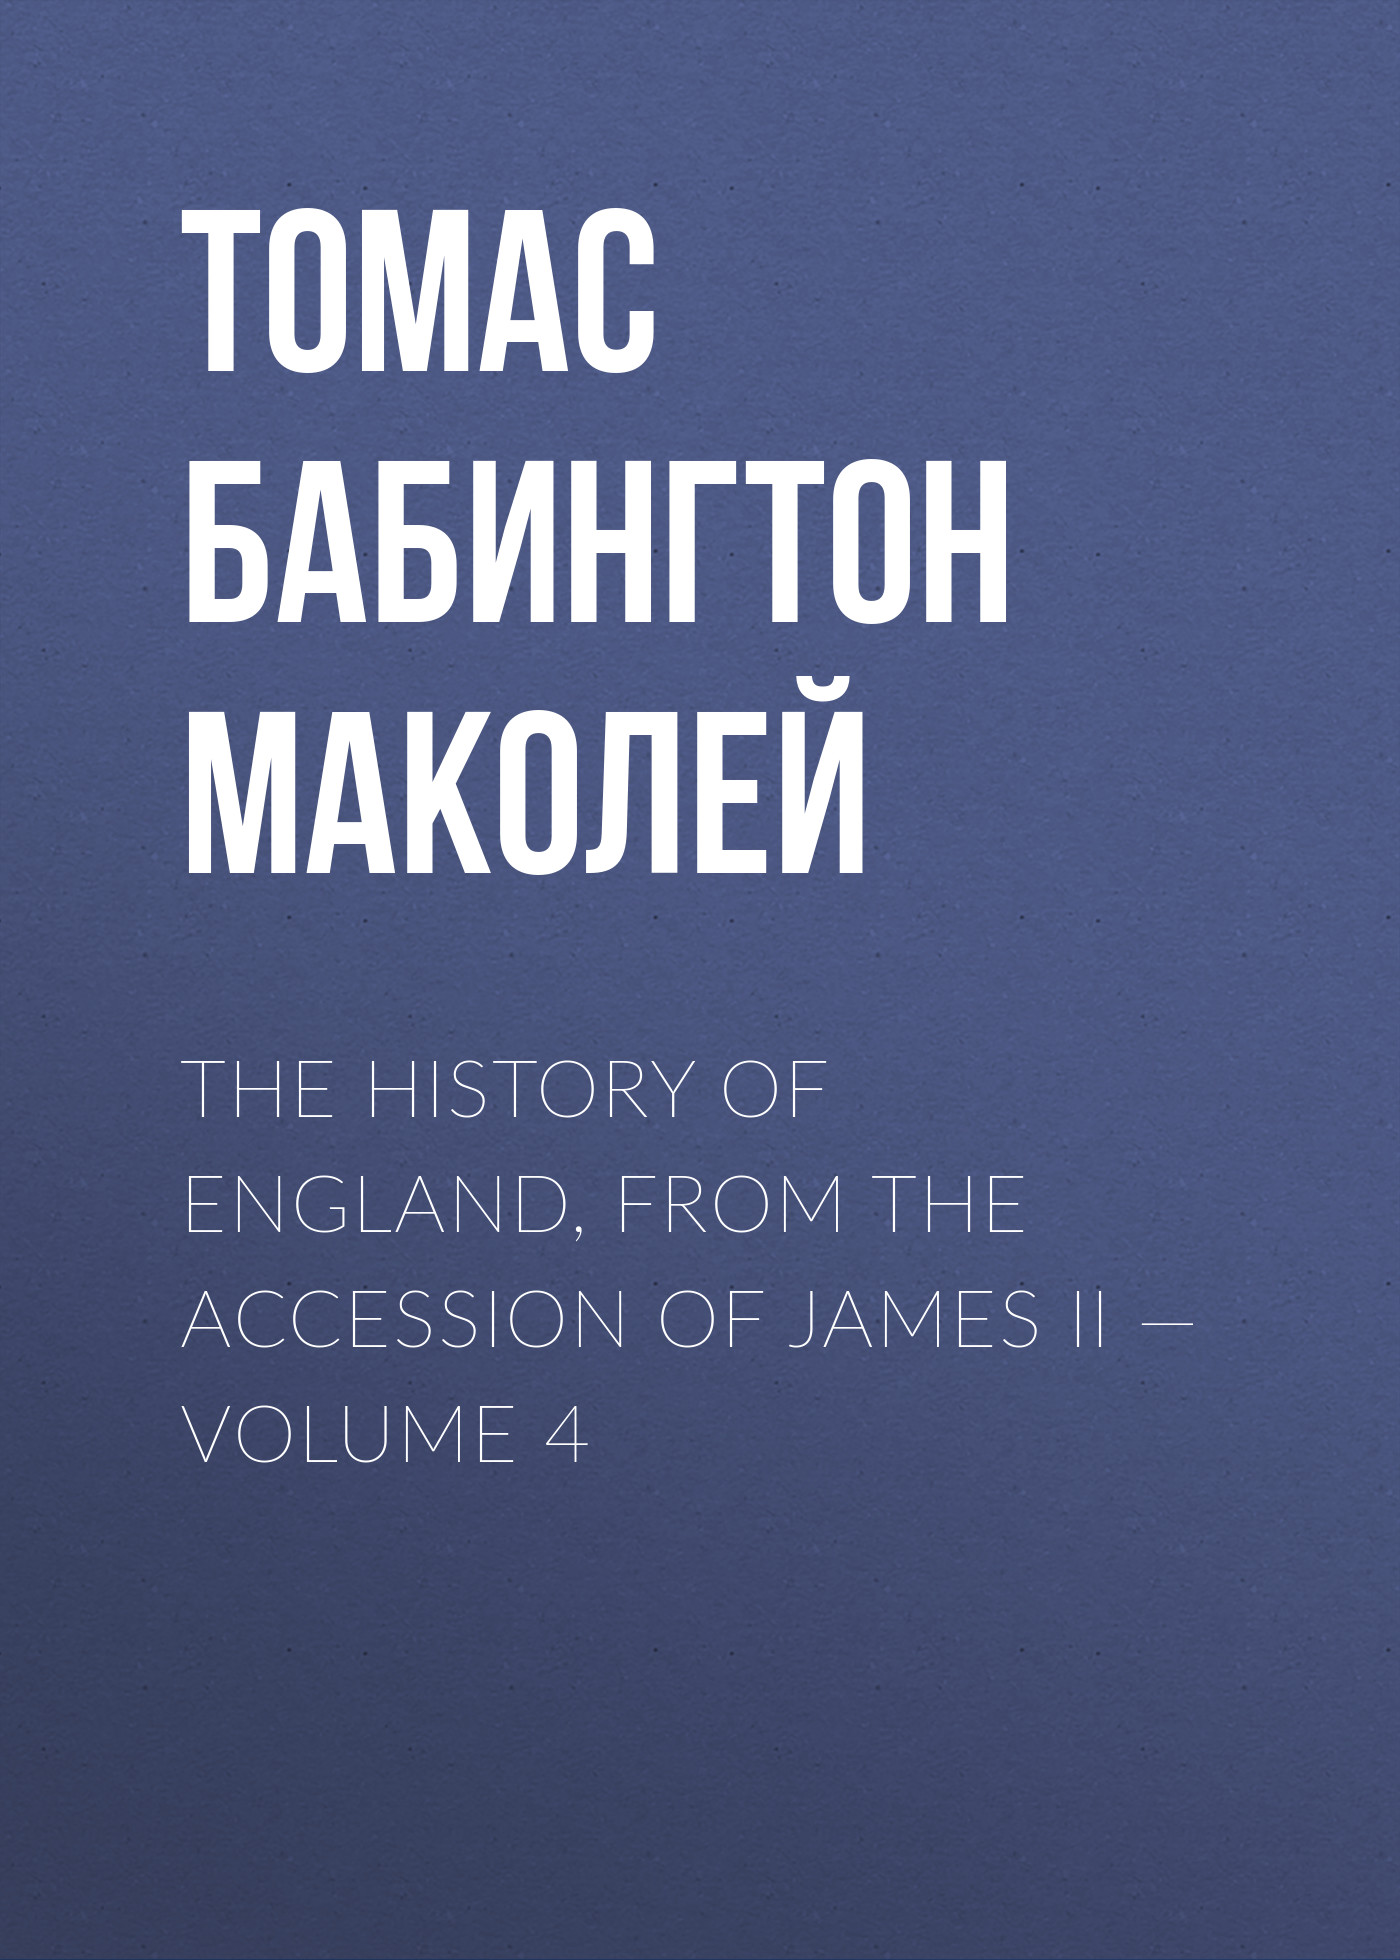 Томас Бабингтон Маколей The History of England, from the Accession of James II — Volume 4 john richard green history of the english people volume 4